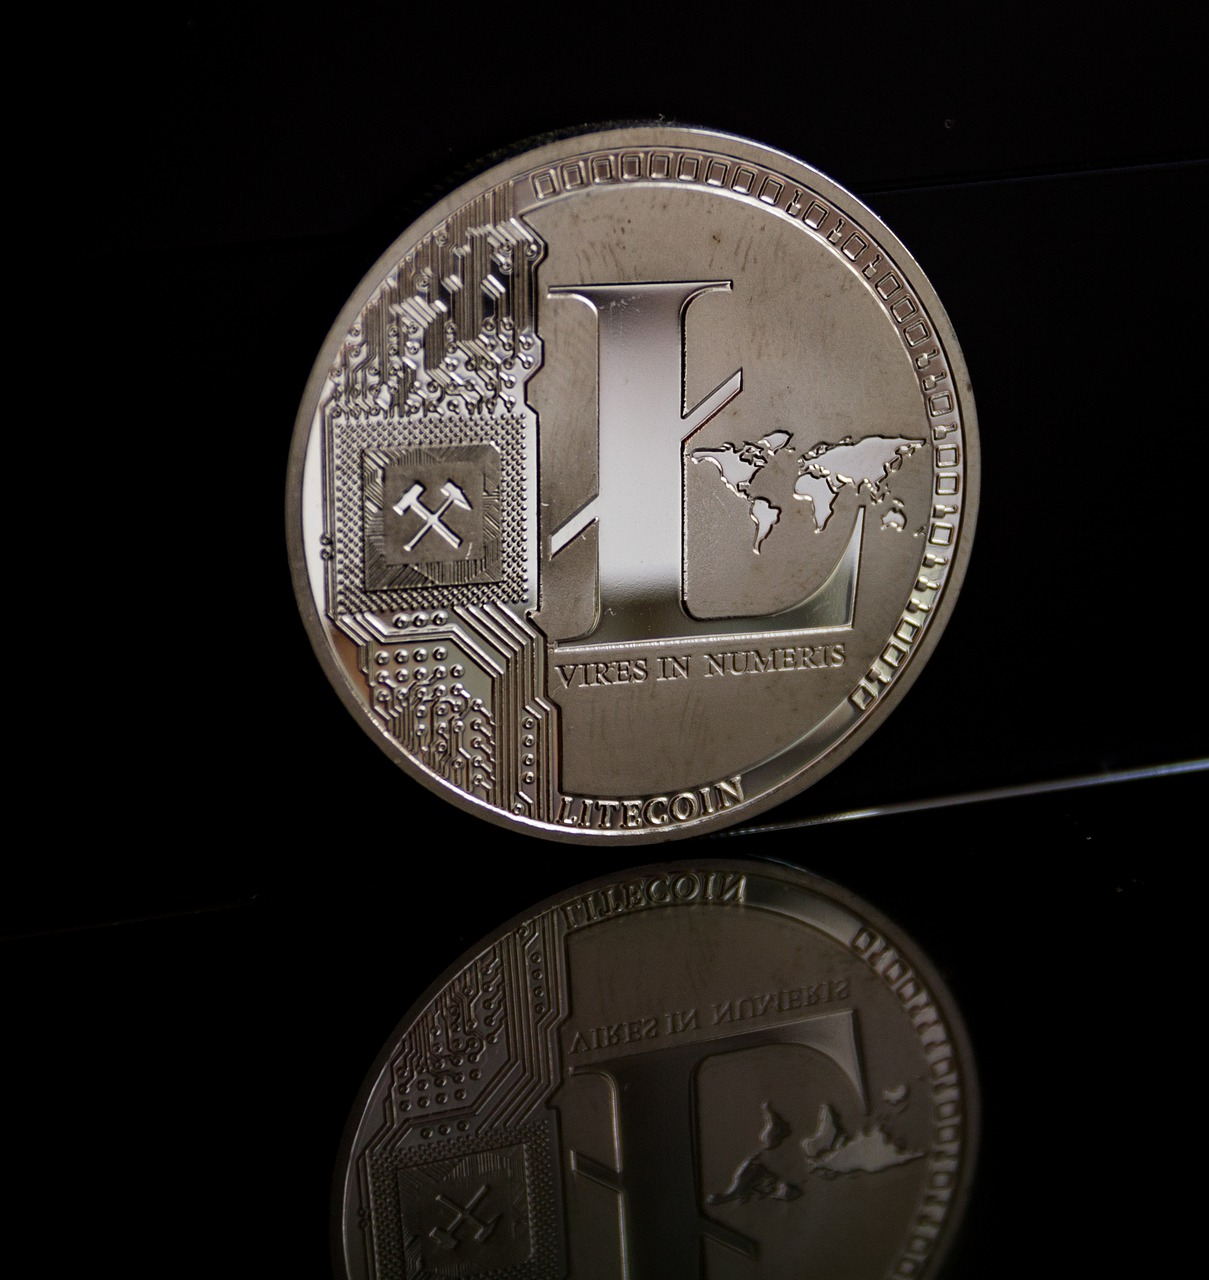 After The Delay Of The Litepay Card Can The Litecoin Powered Service Survive?